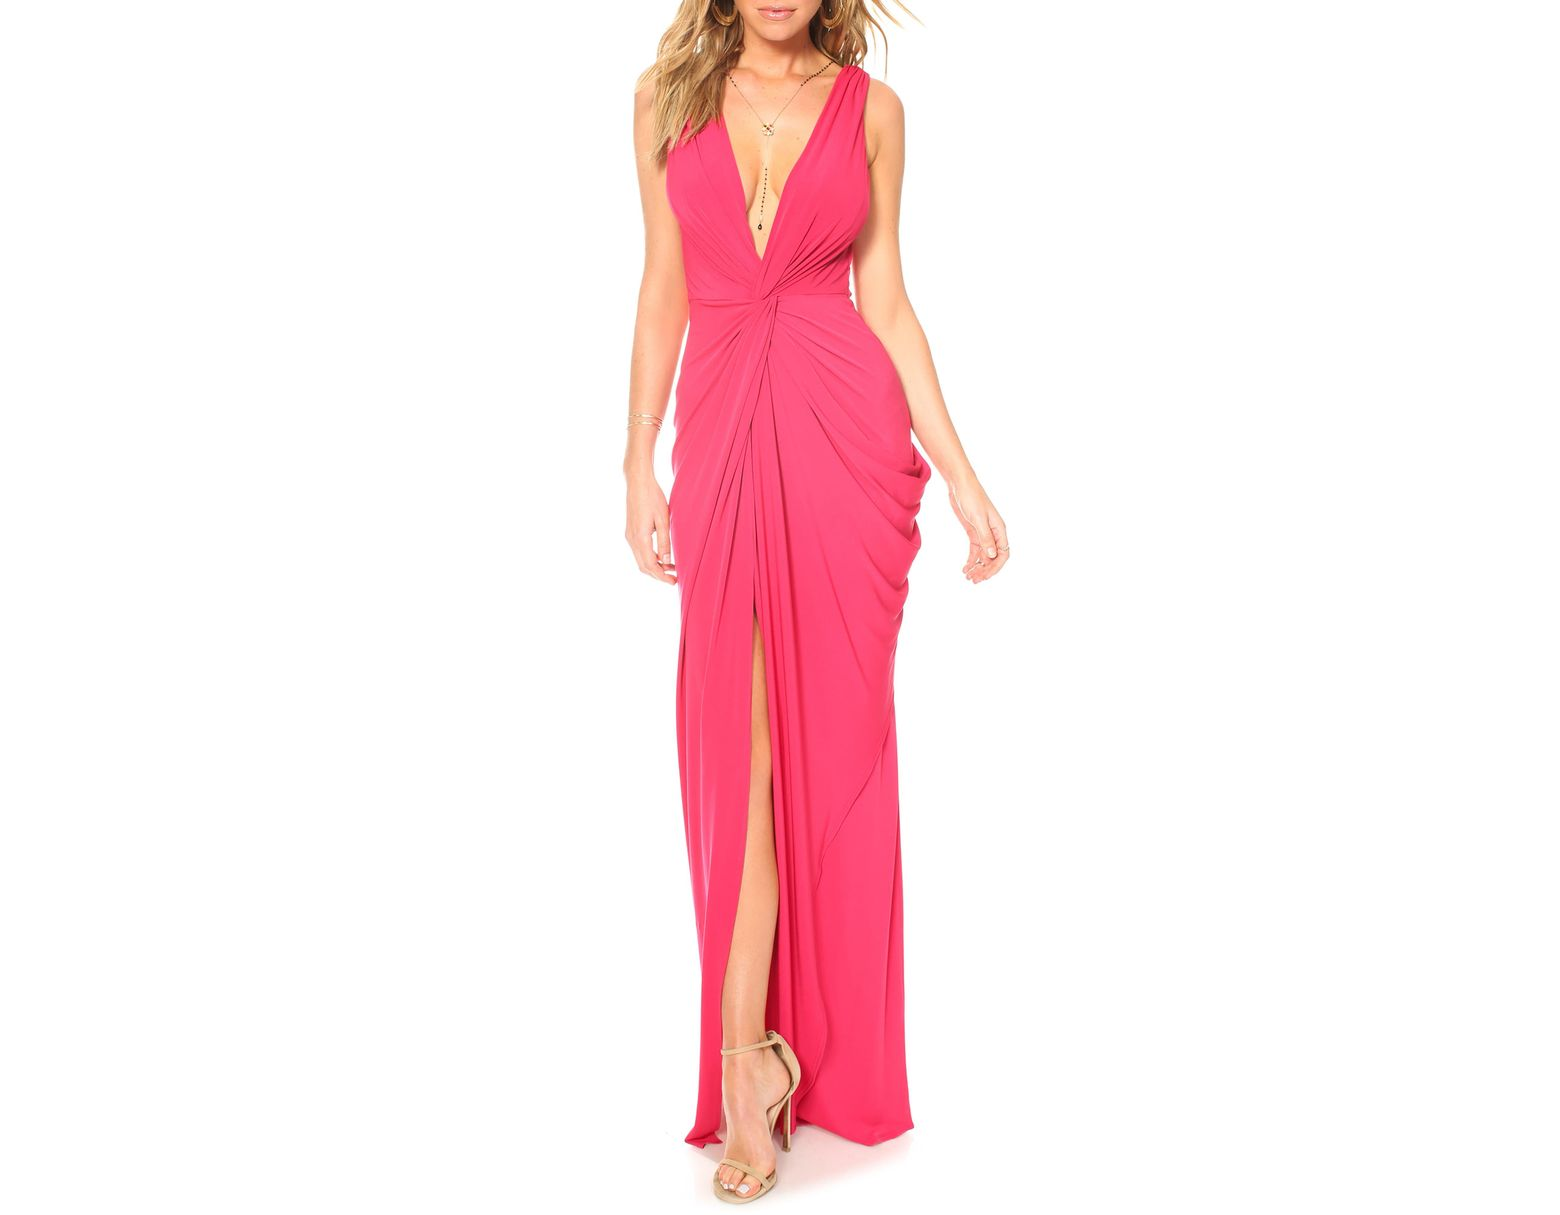 0a3a7d7b9c6 Katie May Leo Twist Front Evening Dress in Red - Lyst